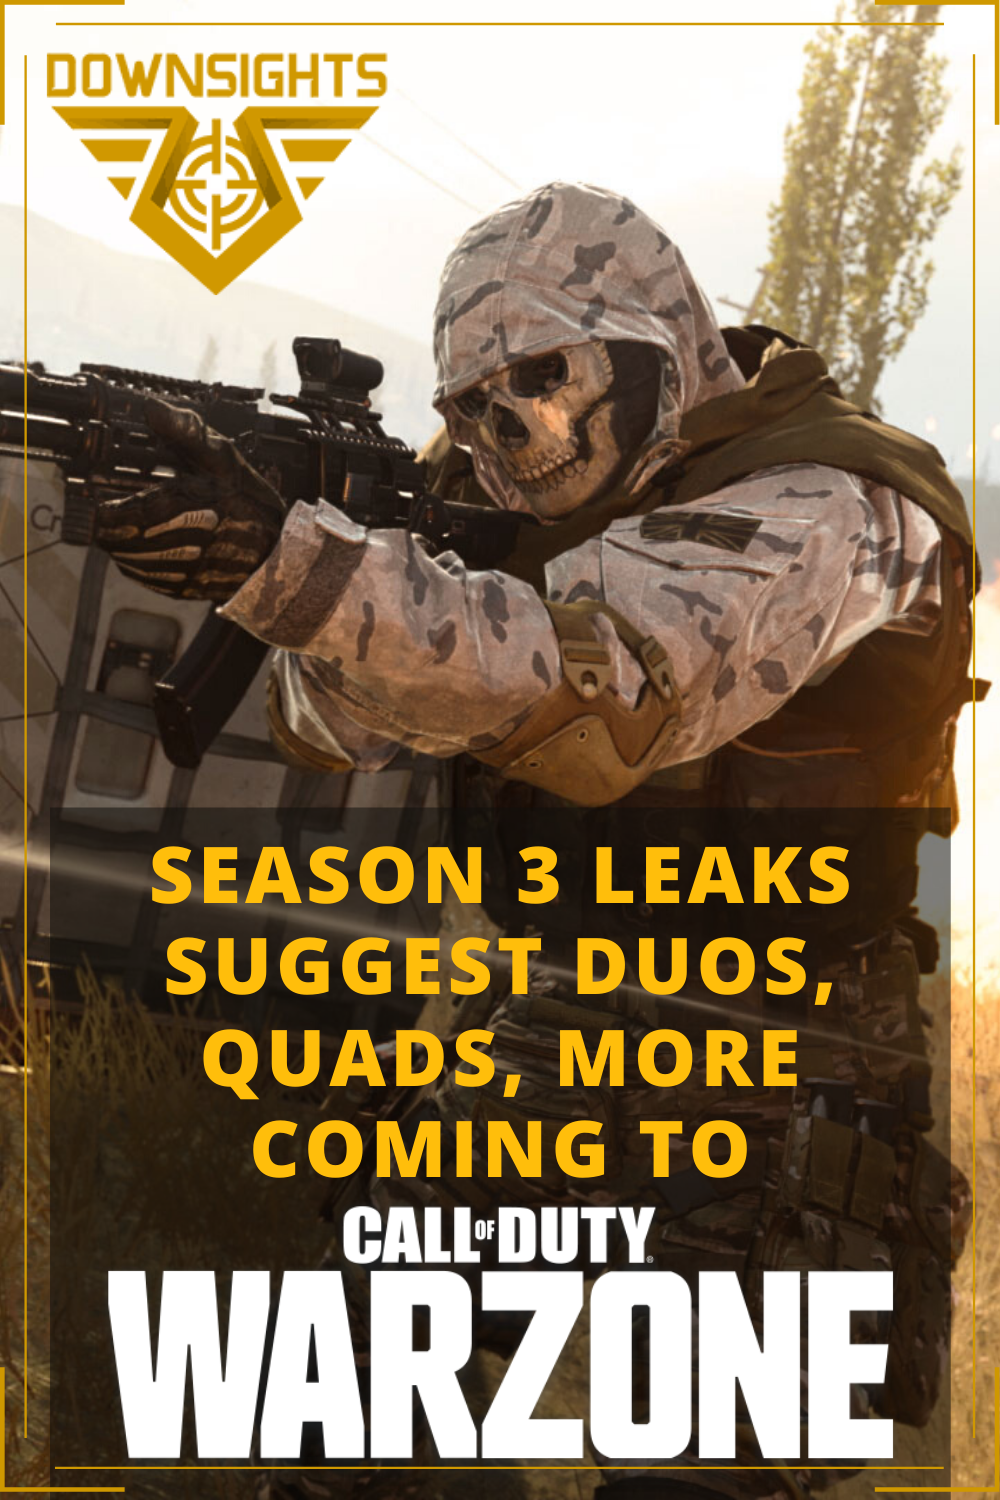 Season 3 Leaks Suggest Duos Quads More Coming To Call Of Duty Warzone Call Of Duty Wallpaper Backgrounds Background Images